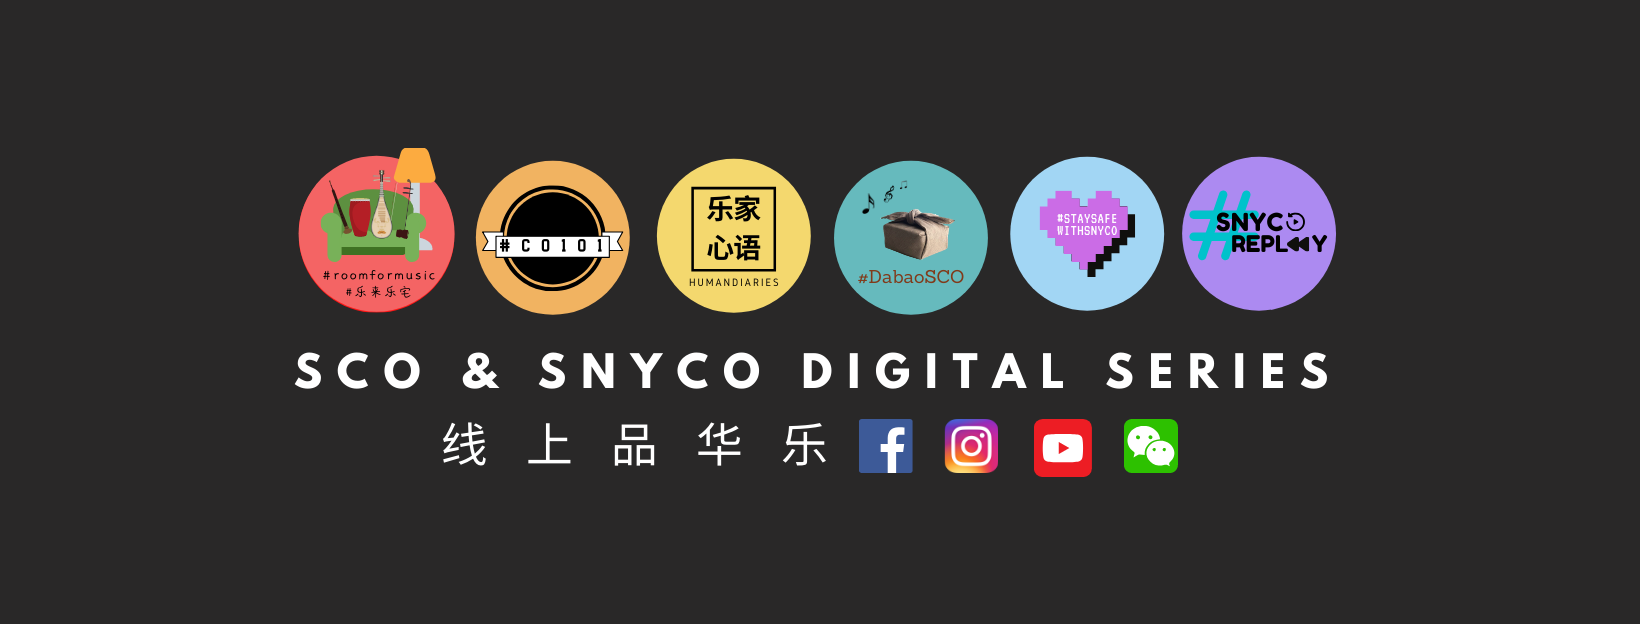 SCO Digital Series banner